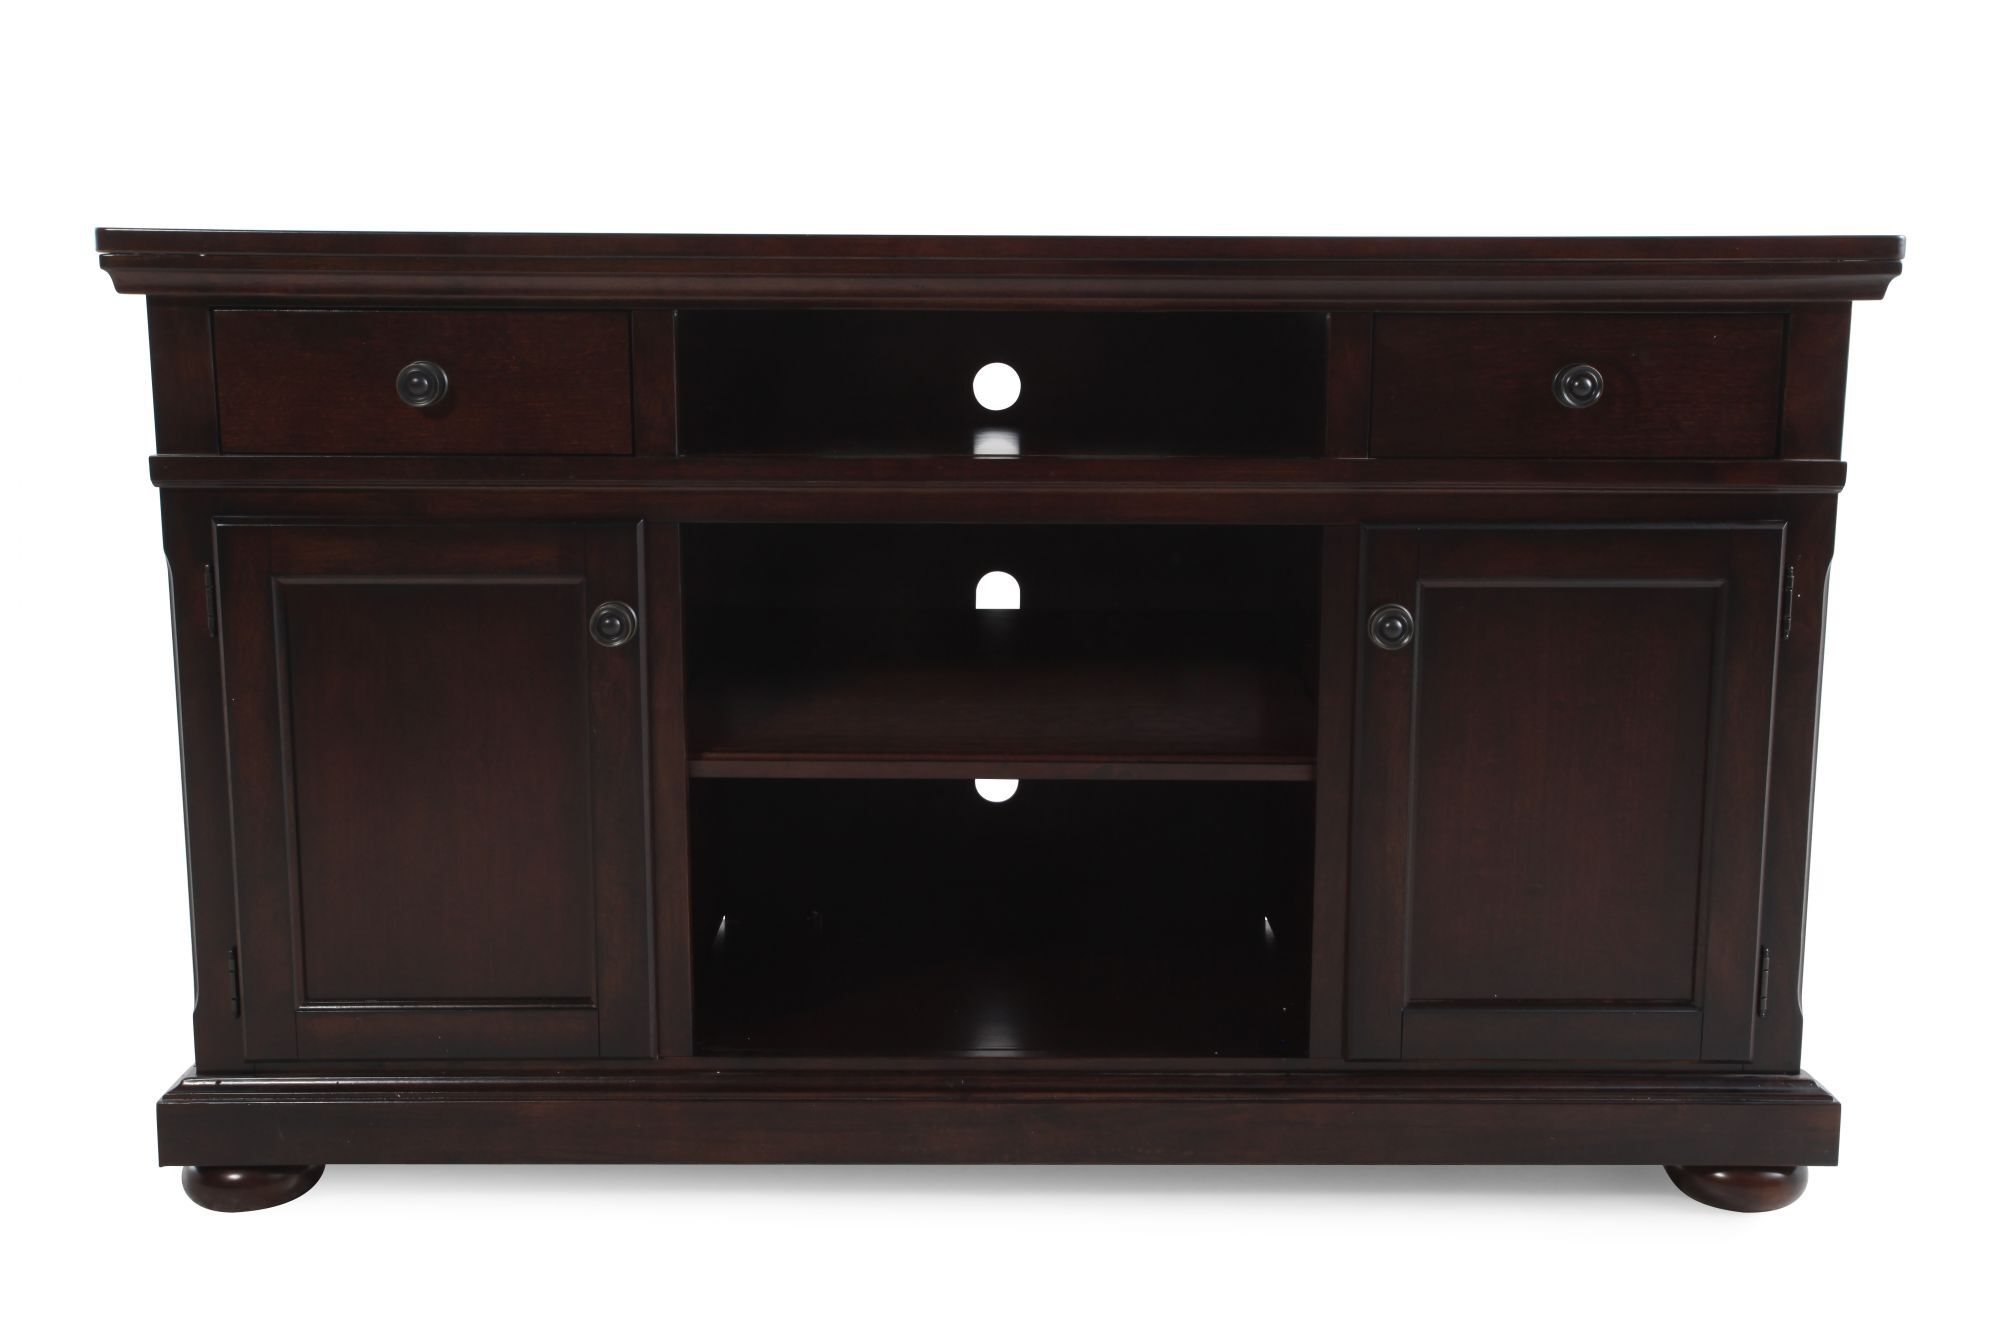 Three Open Compartment Casual TV Stand In Cherry